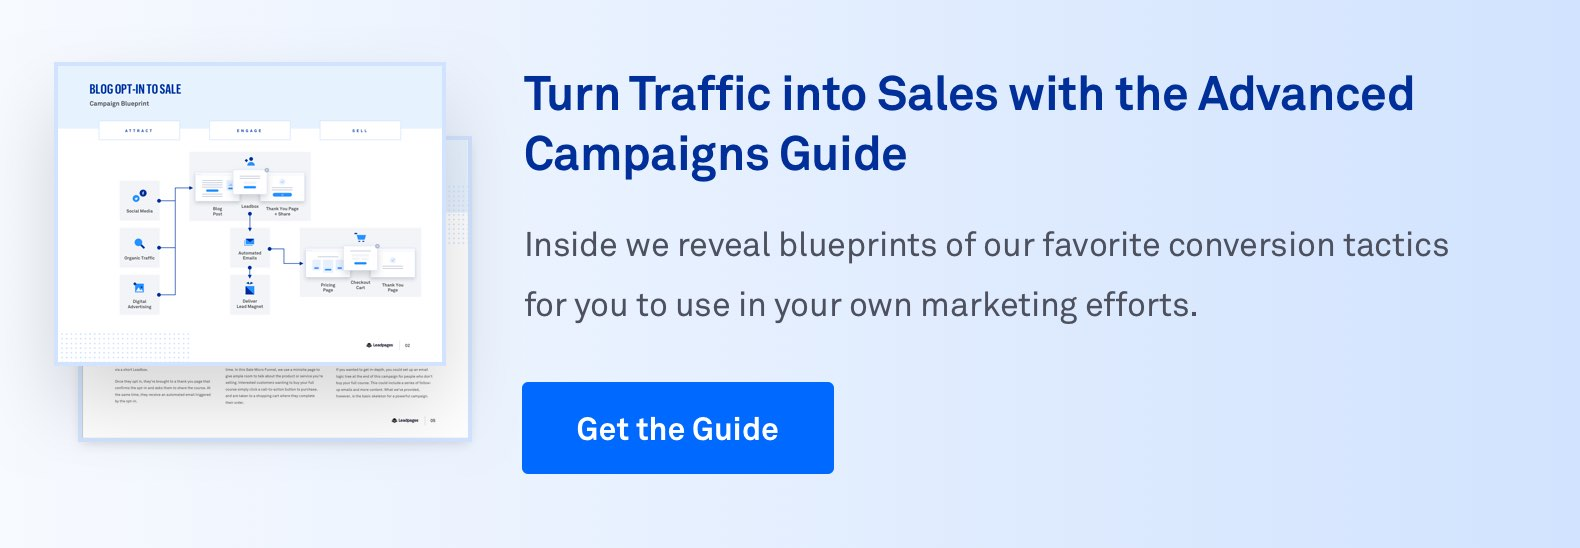 3 Step Process] How to Build a Sales Funnel that Takes the Cake